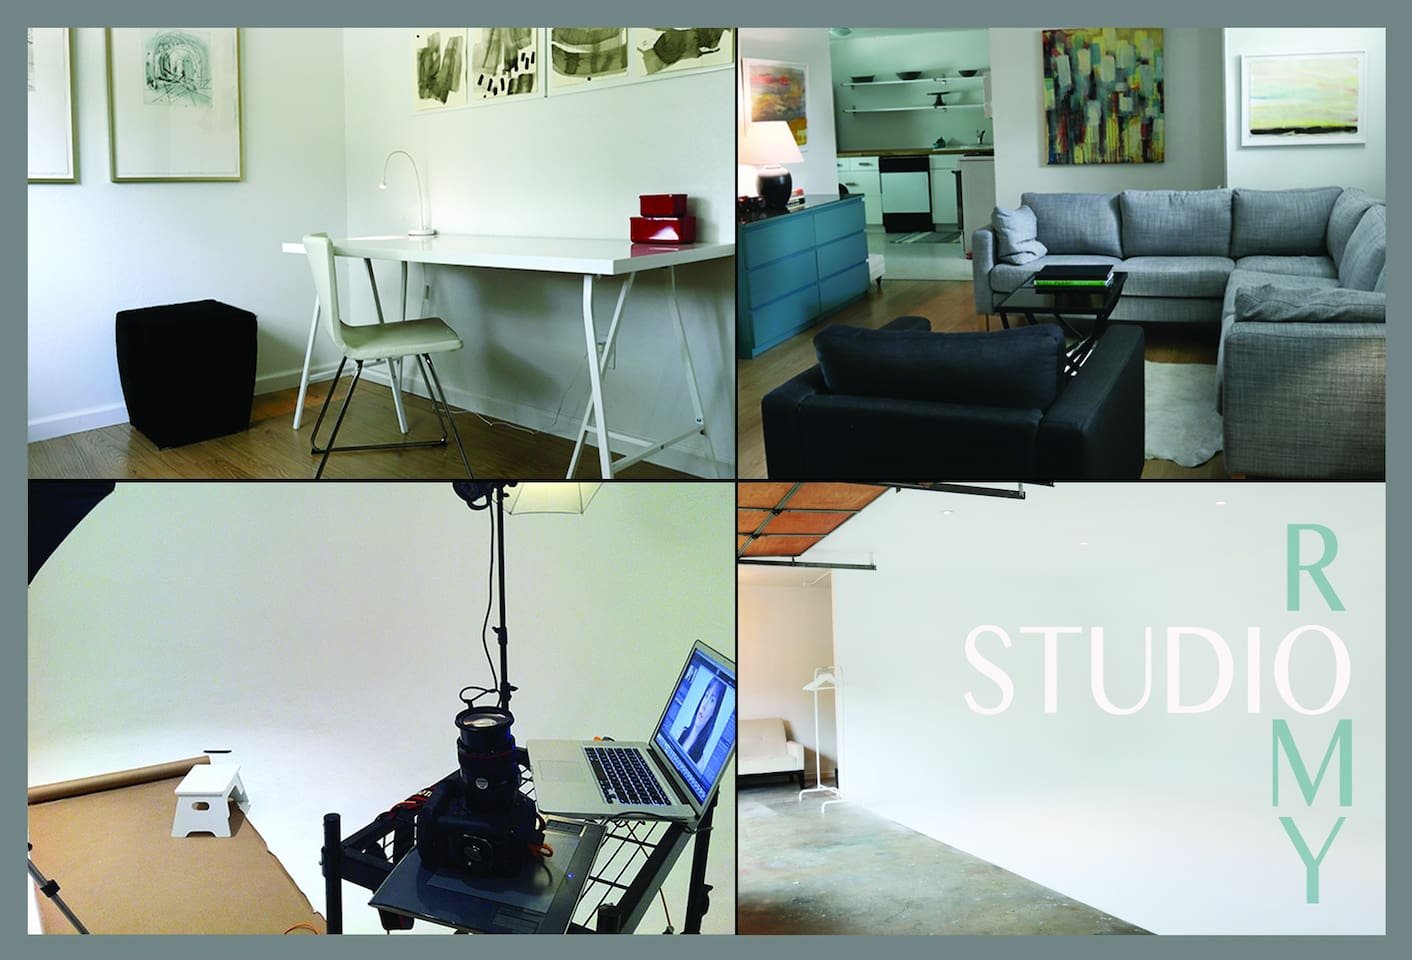 upstairs 1 of 2 offices and living room. Downstairs infinity wall, photography studio.